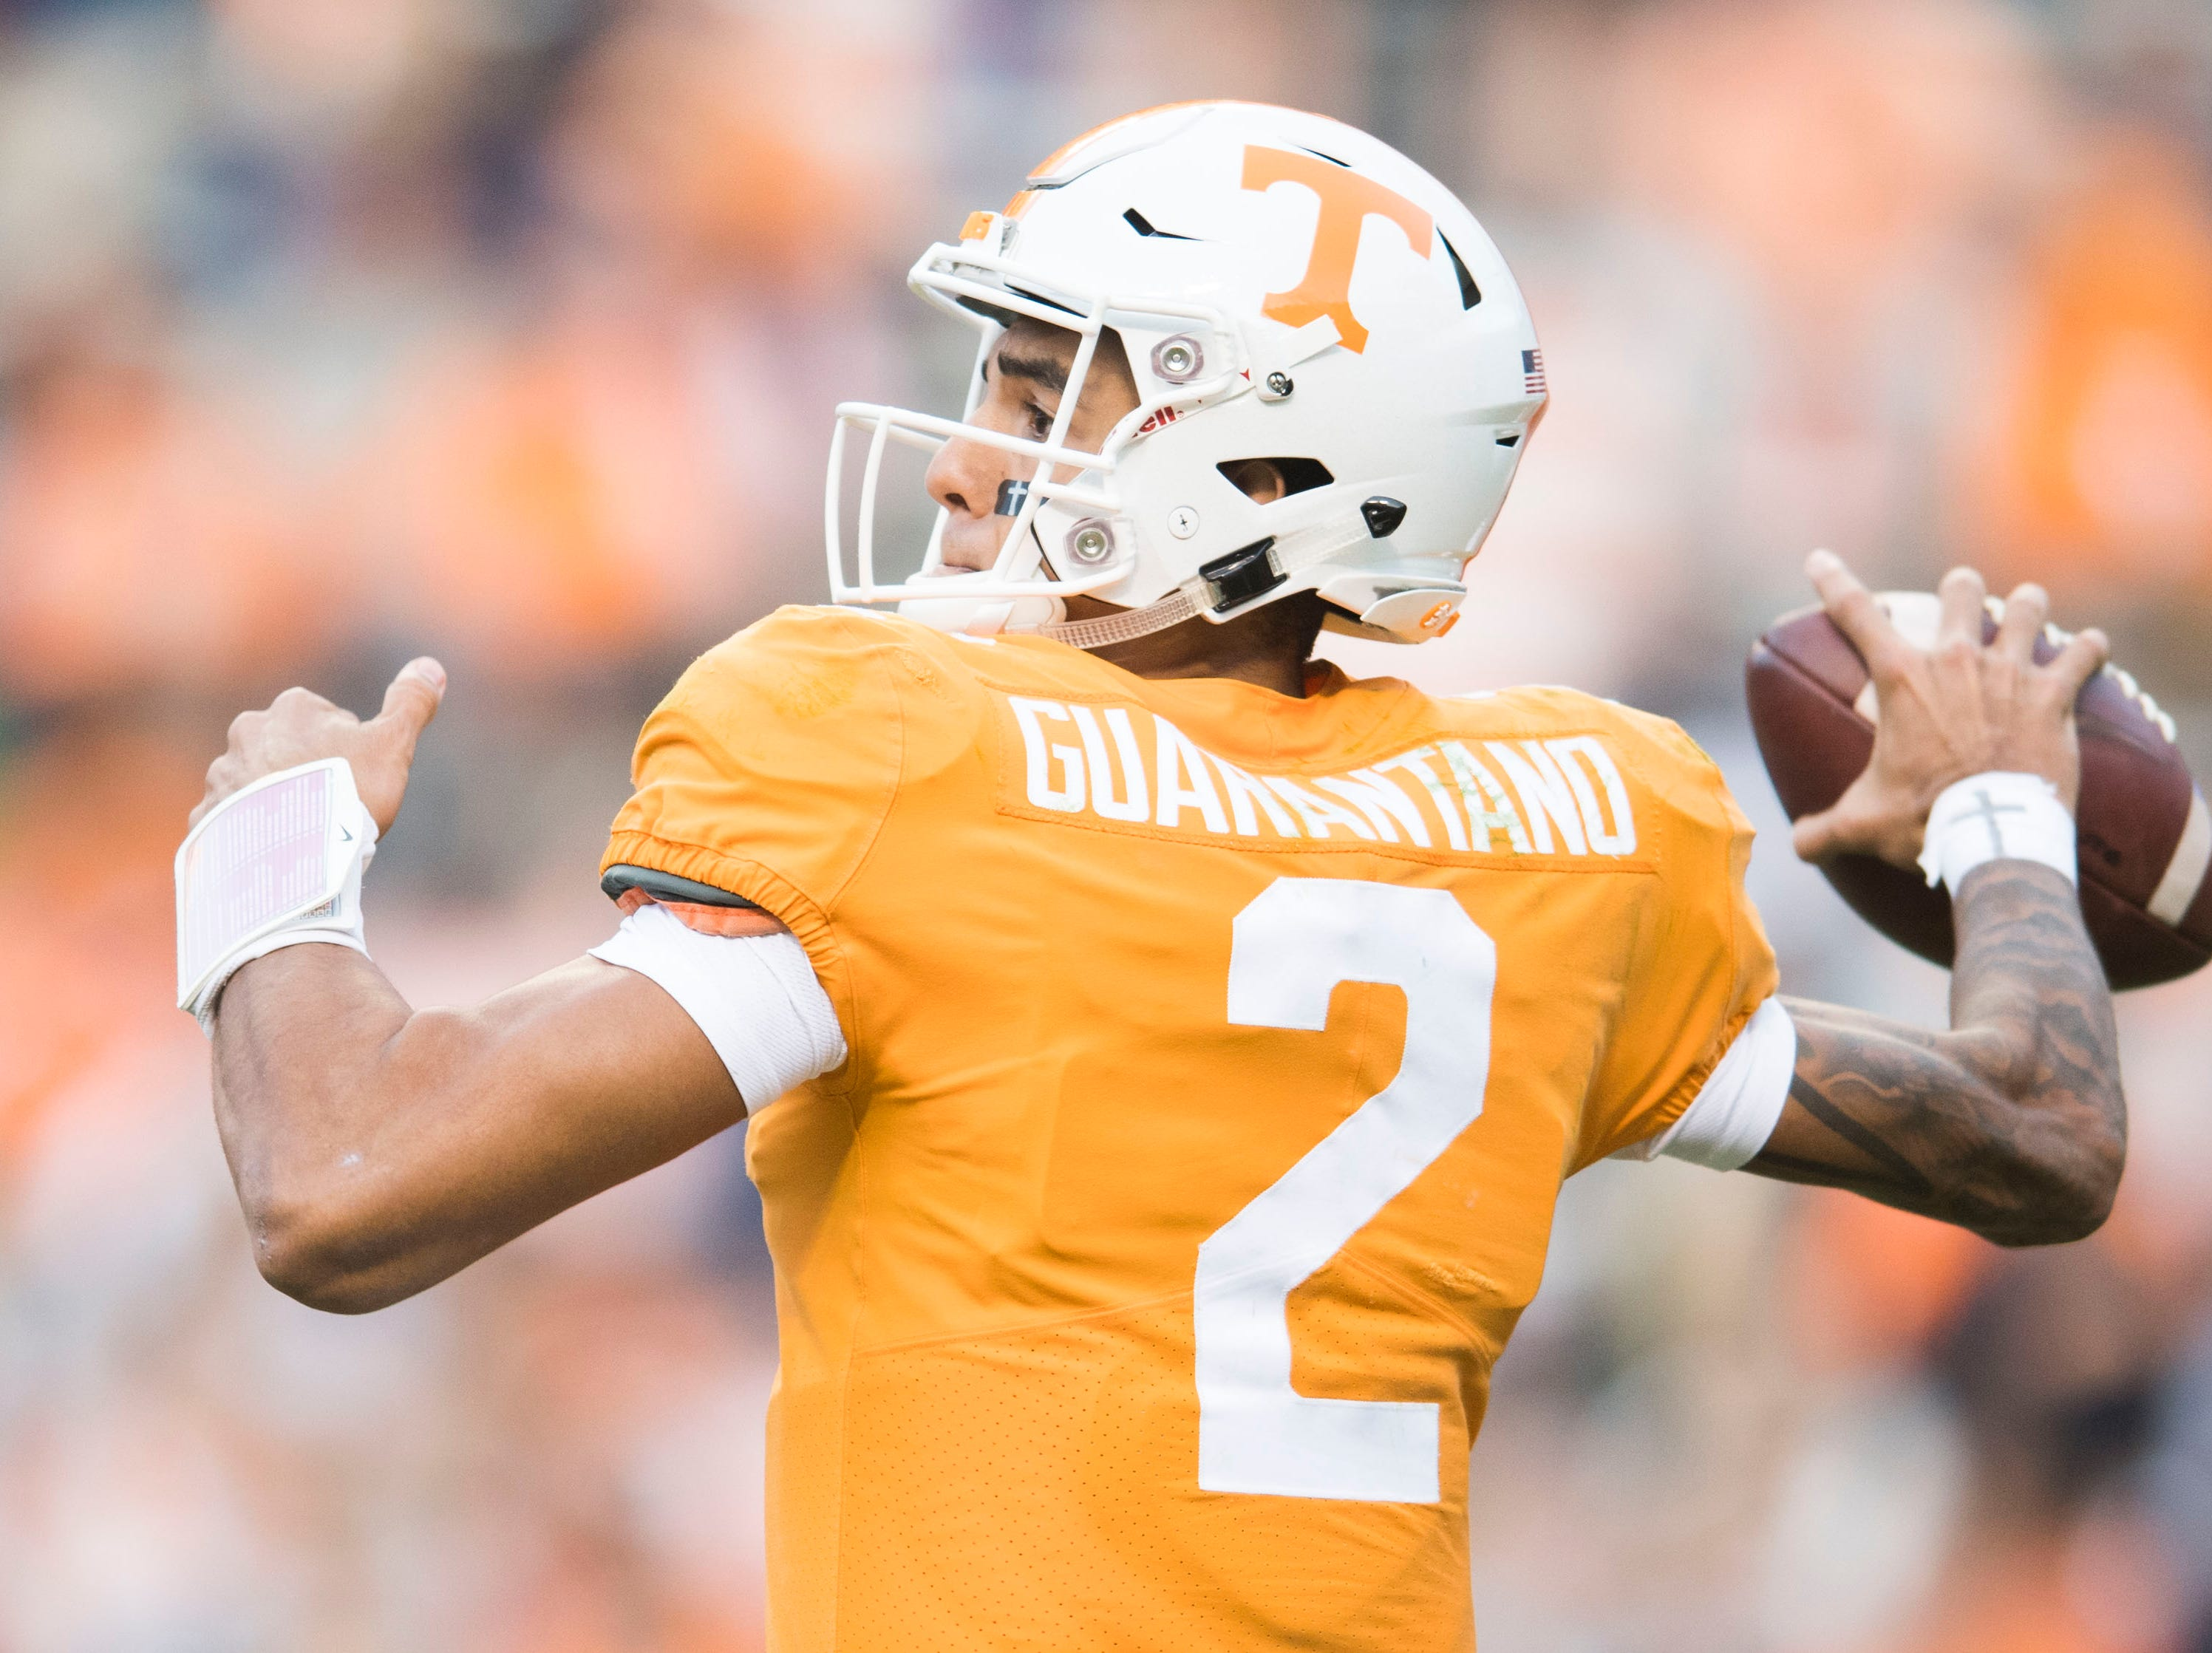 Tennessee quarterback Jarrett Guarantano (2) throws the ball during the homecoming game between Tennessee and Charlotte outside of Neyland Stadium Saturday, Nov. 3, 2018.